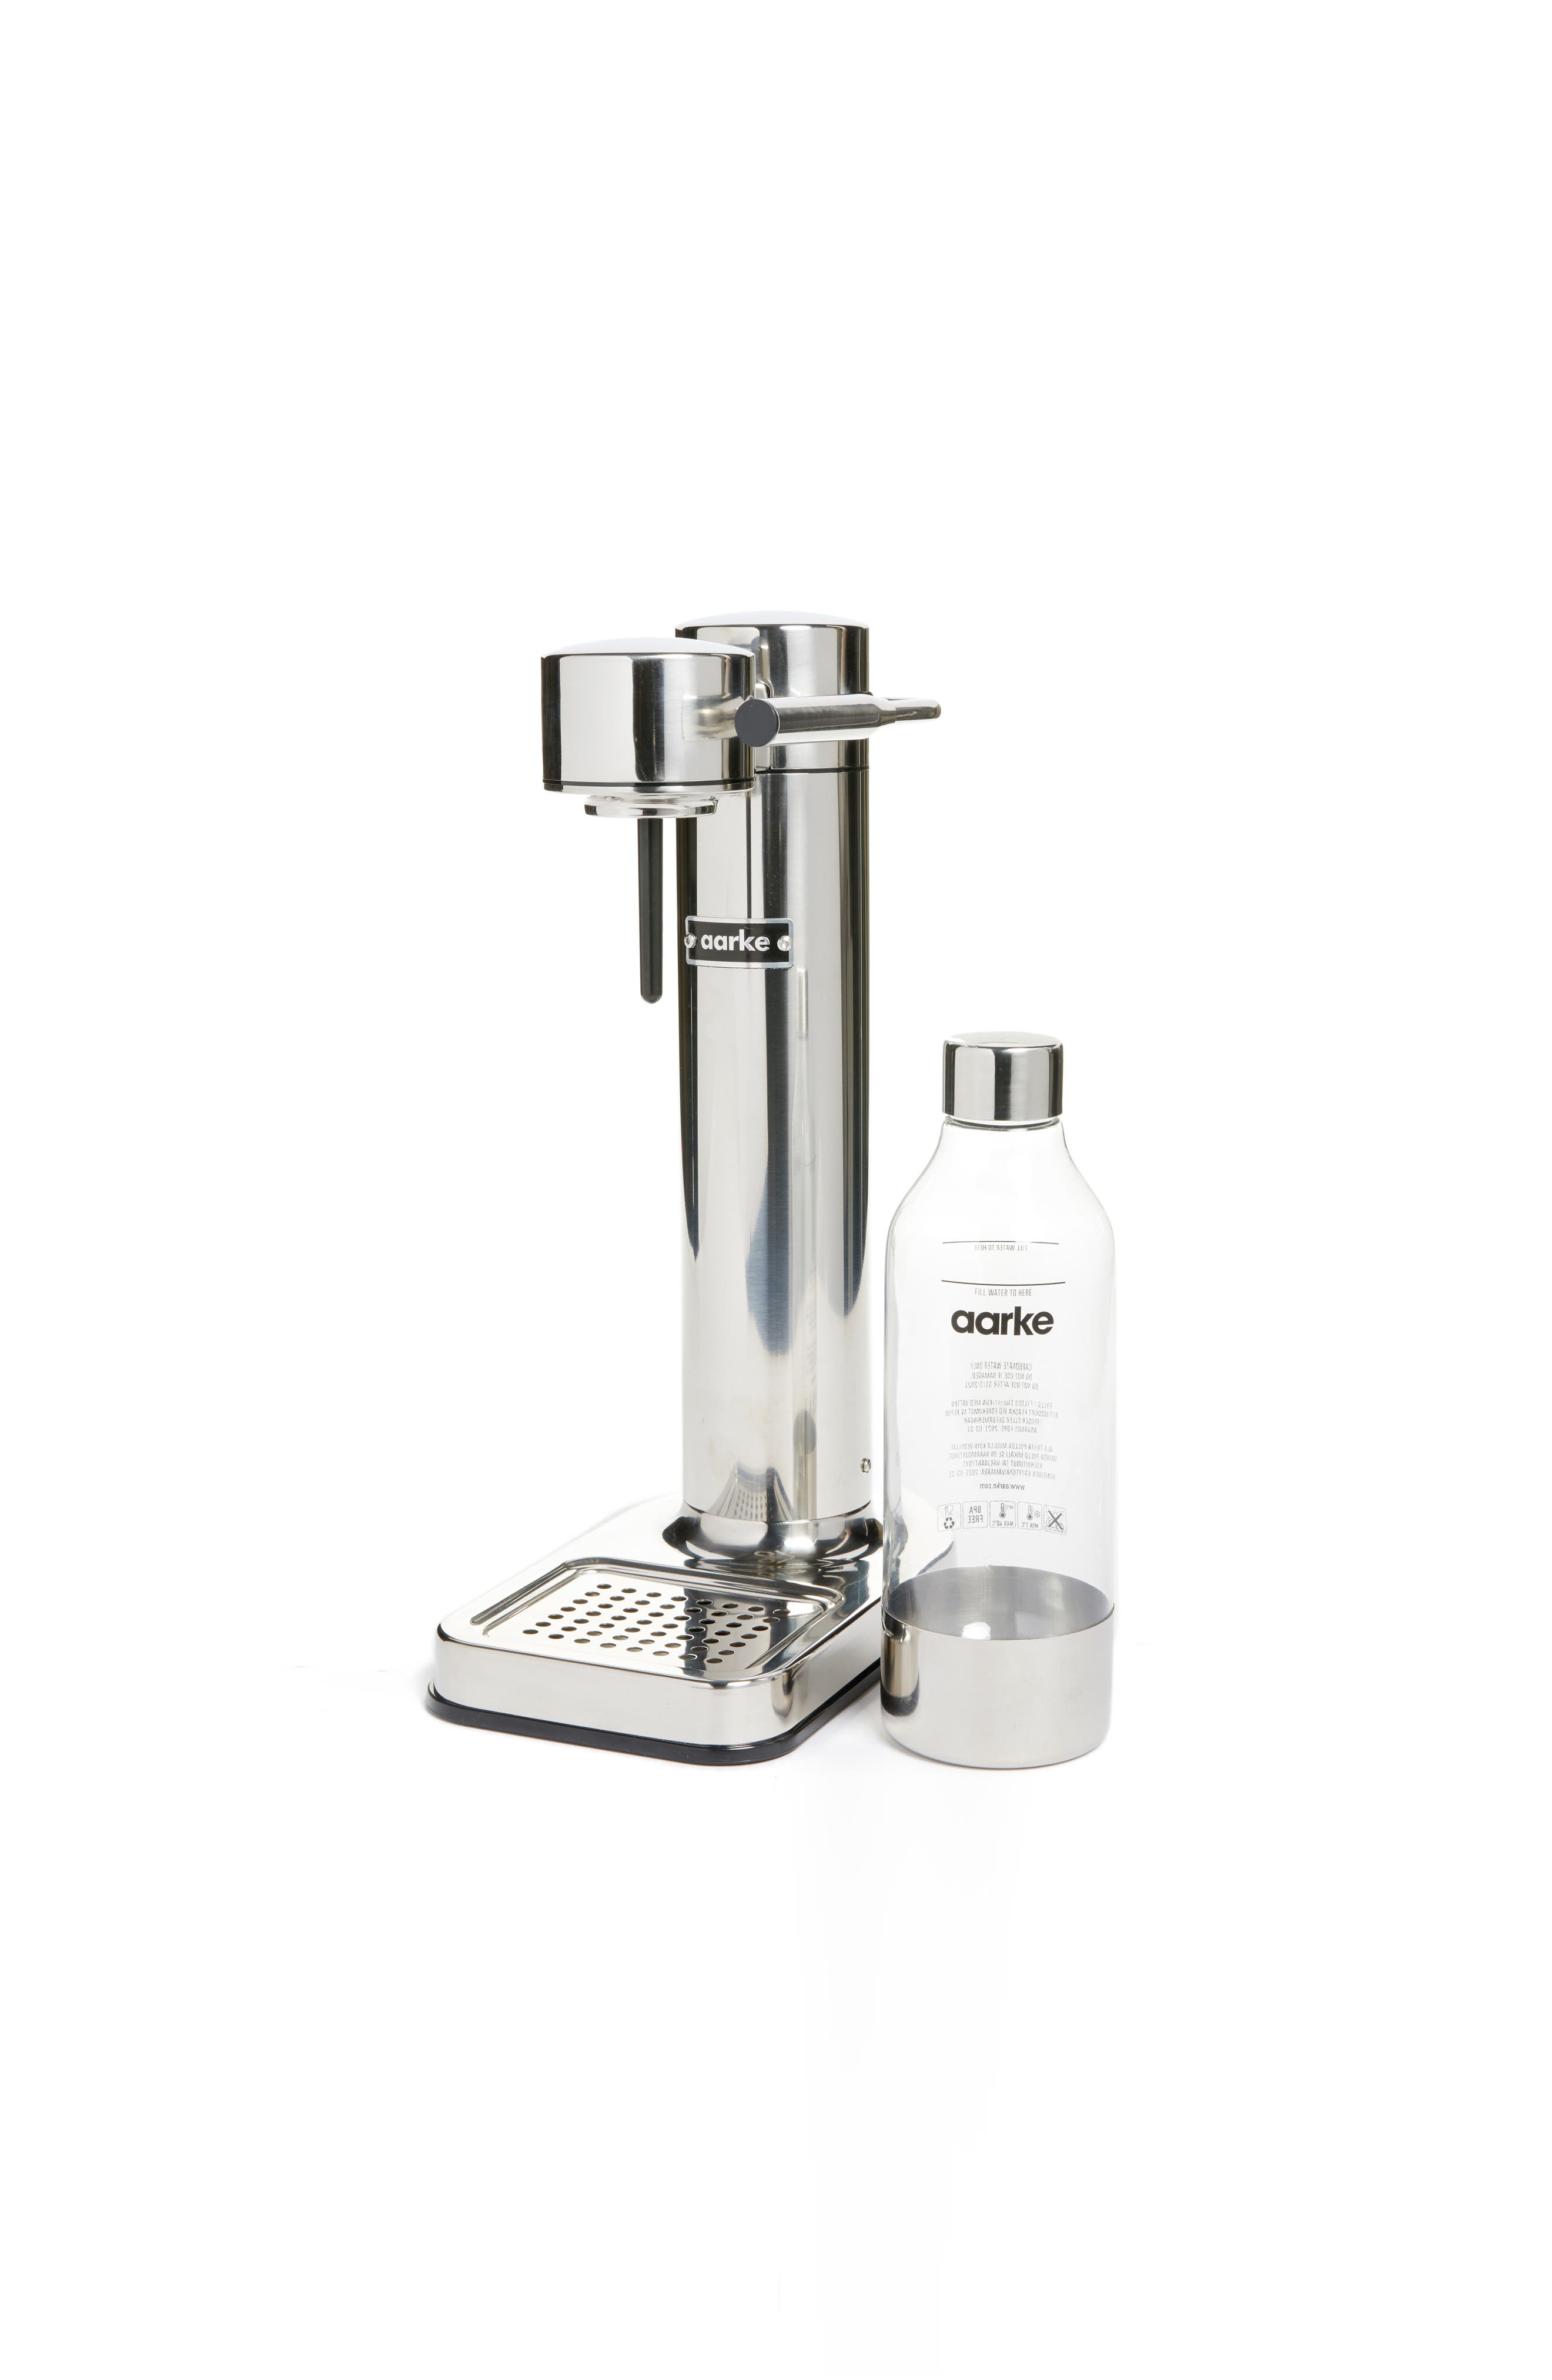 Main Image - Aarke Stainless Steel Sparkling Water Maker